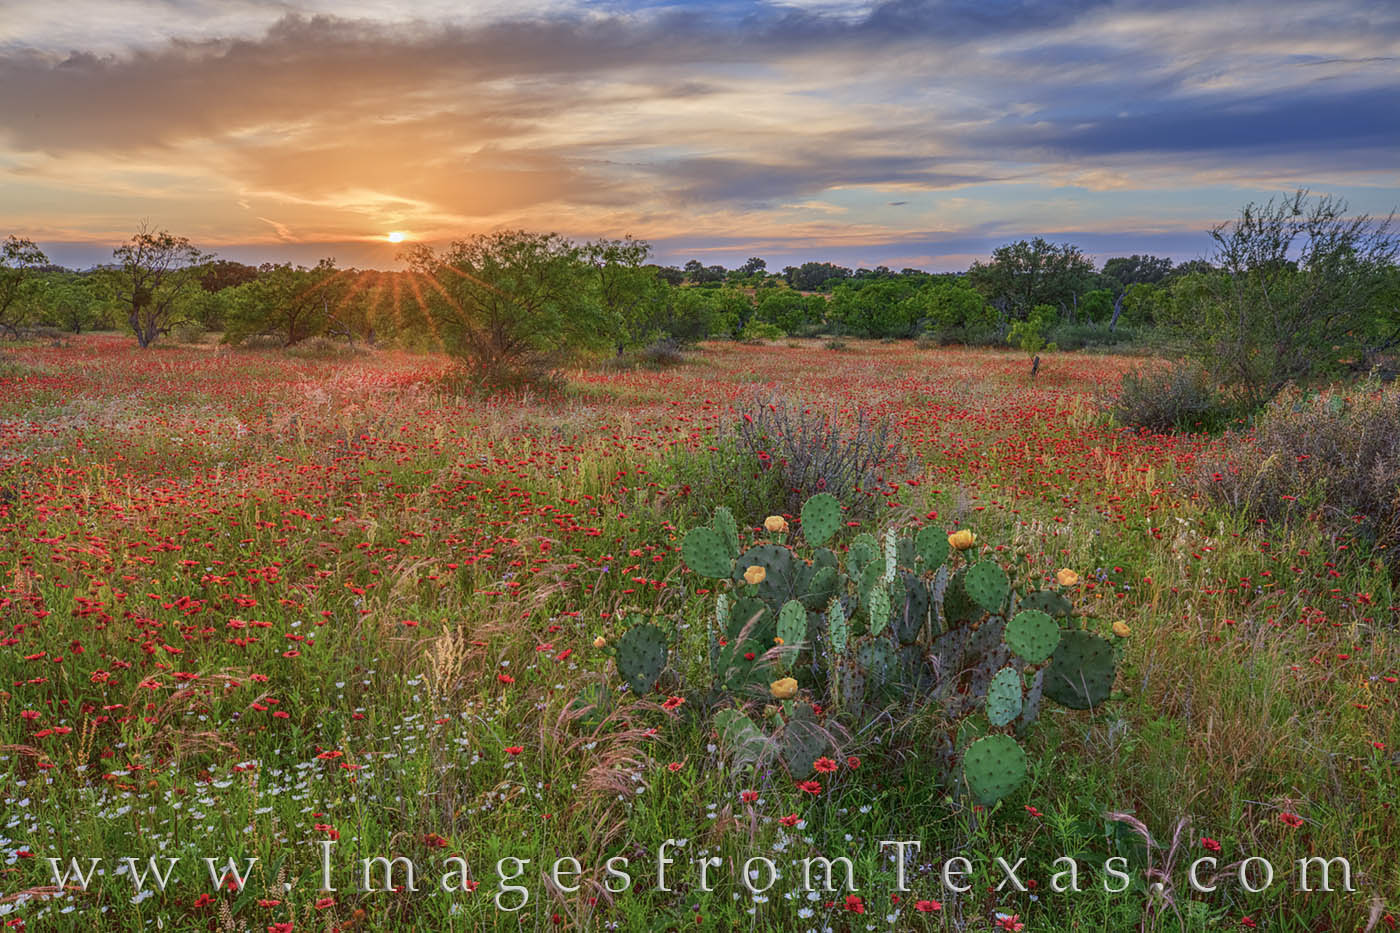 wildflowers, texas hill country, prickly pear, indian blankets, sunset, sunburst, beauty, photo